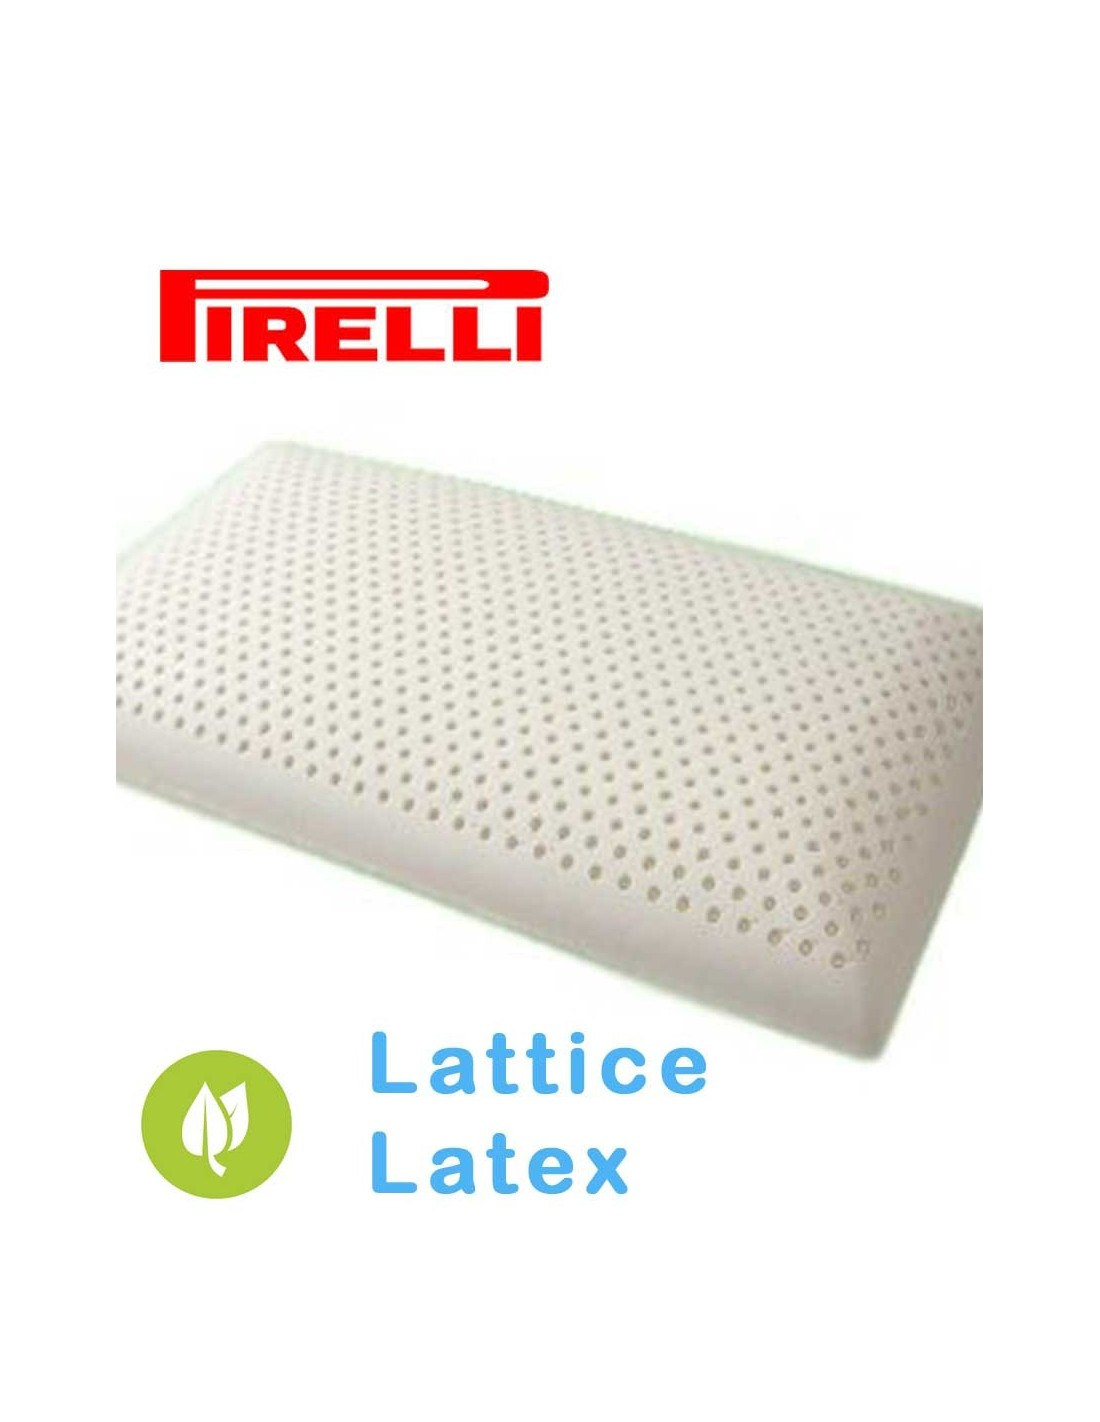 Pirelli Materassi.Pirelli Classic Latex Pillow 10 Cm 13 Cm 15 Cm High